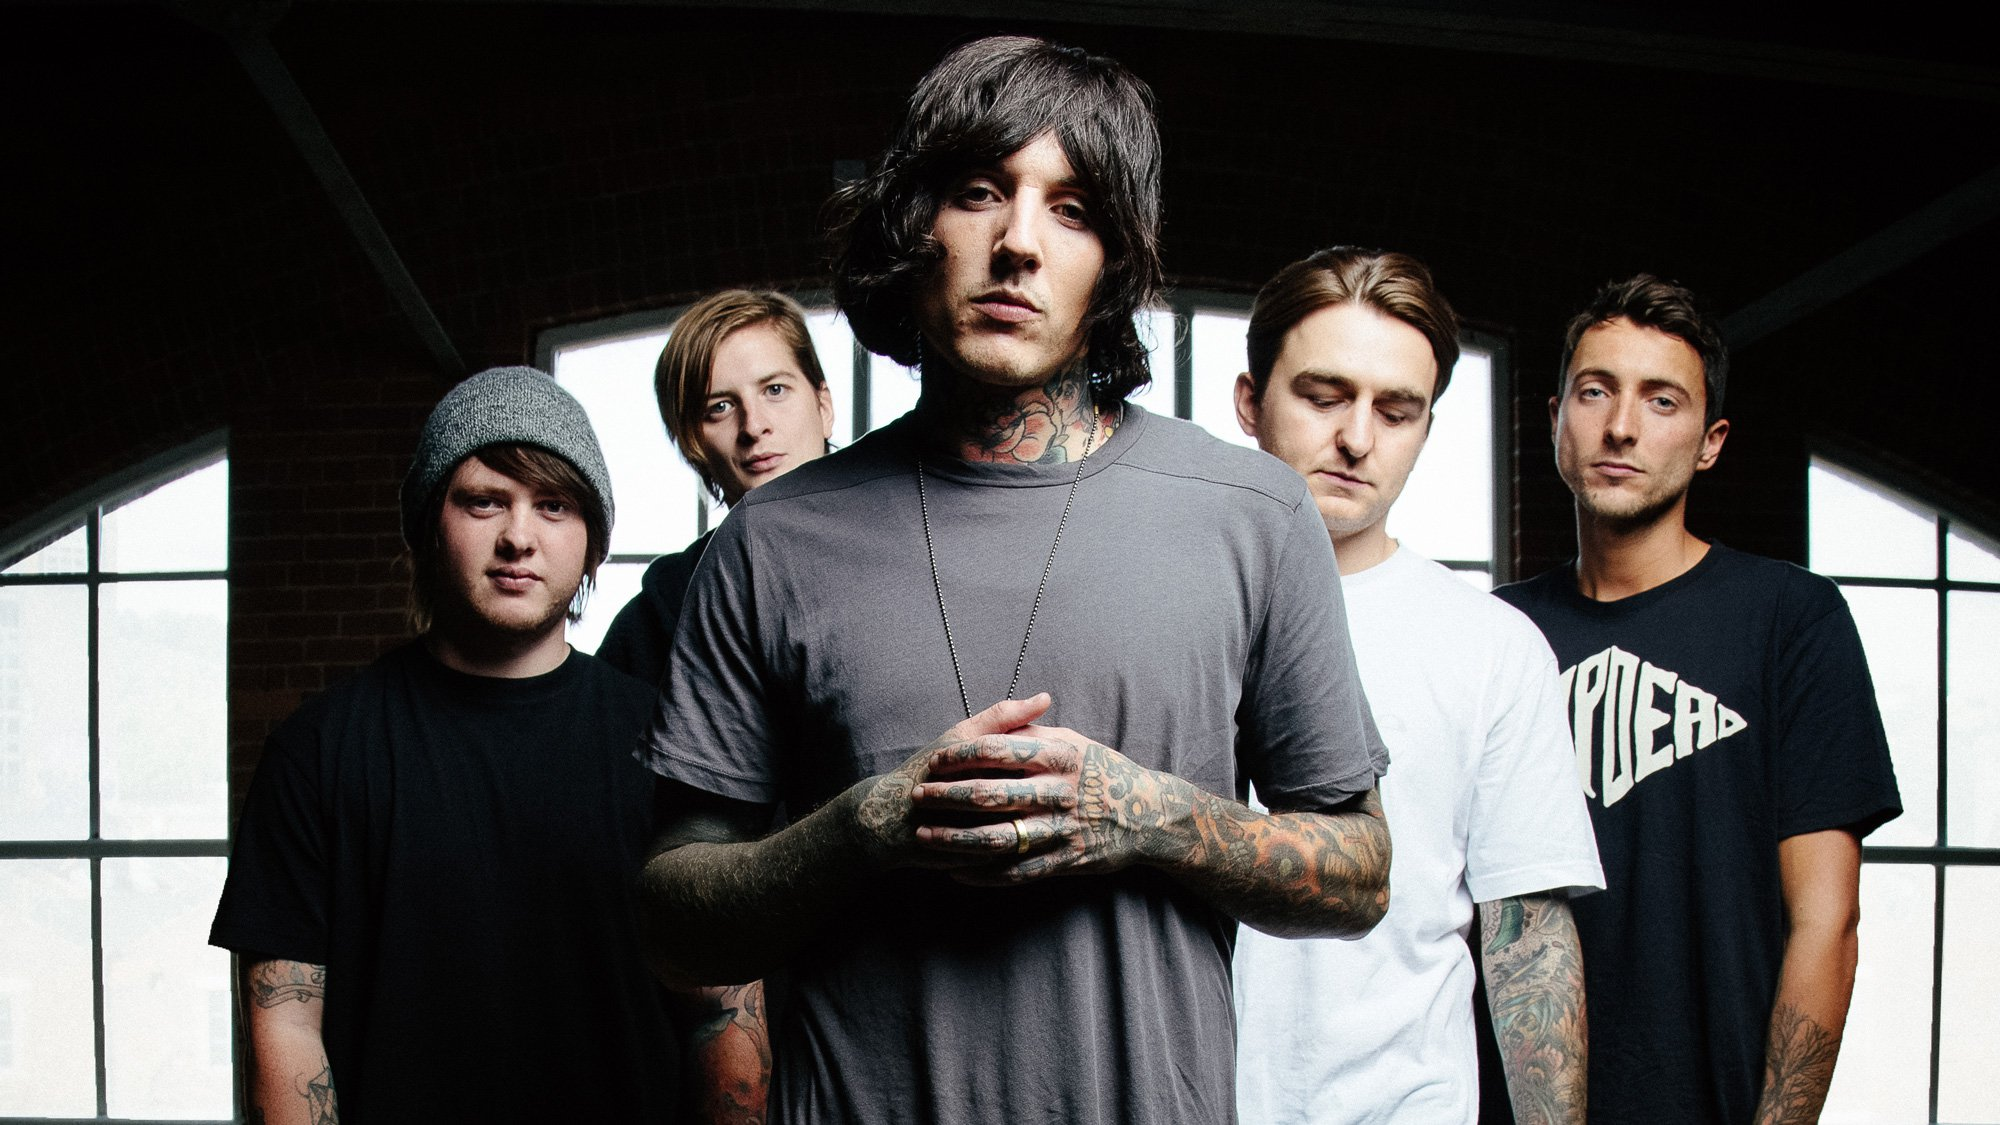 Bring Me The Horizon Wallpapers High Quality Download Free